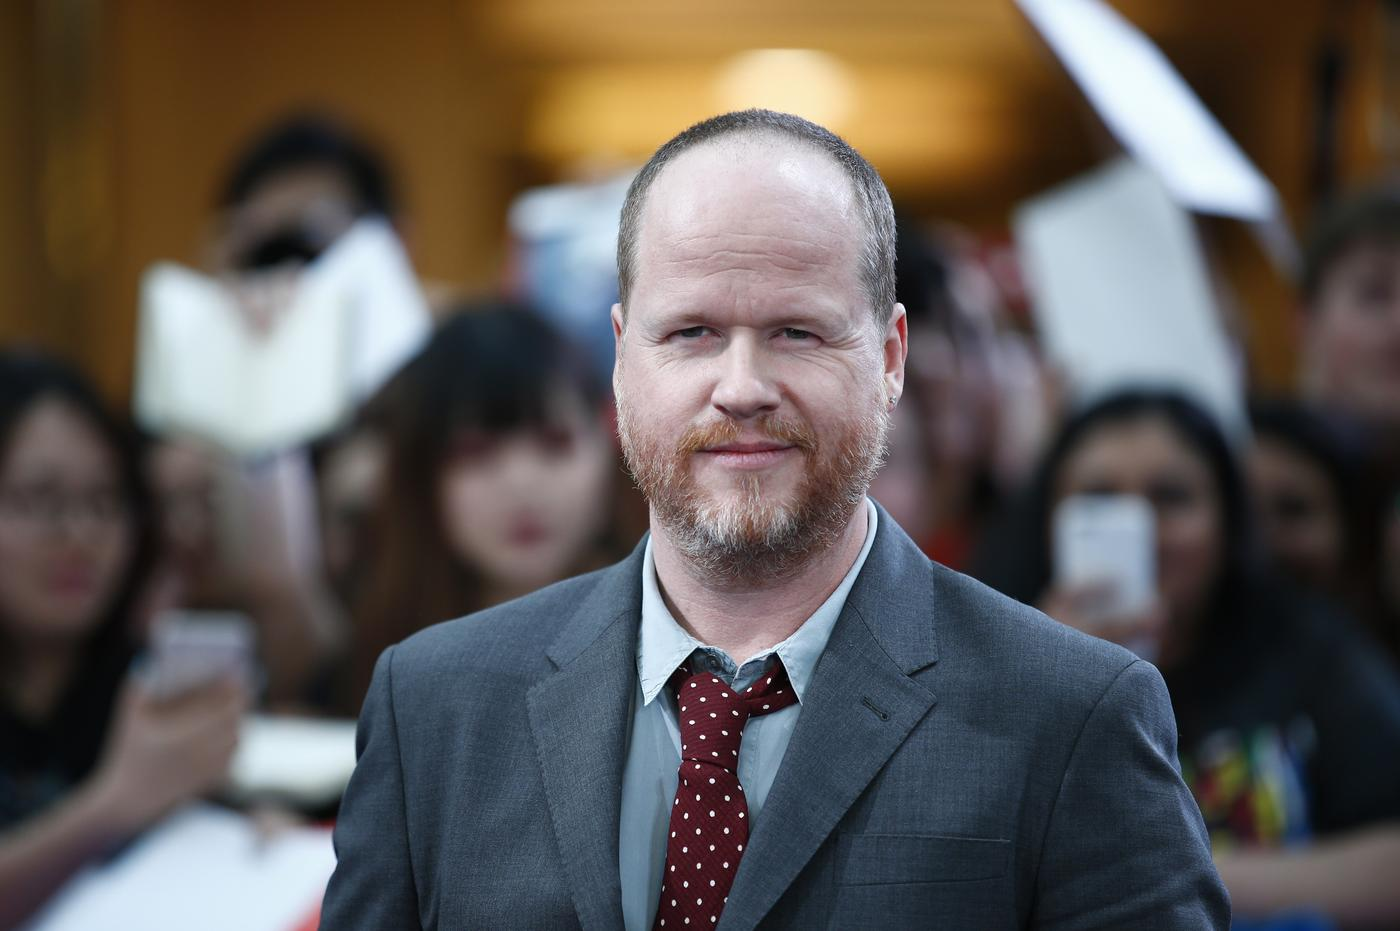 Joss Whedon just confirmed he would love to direct a Star Wars film